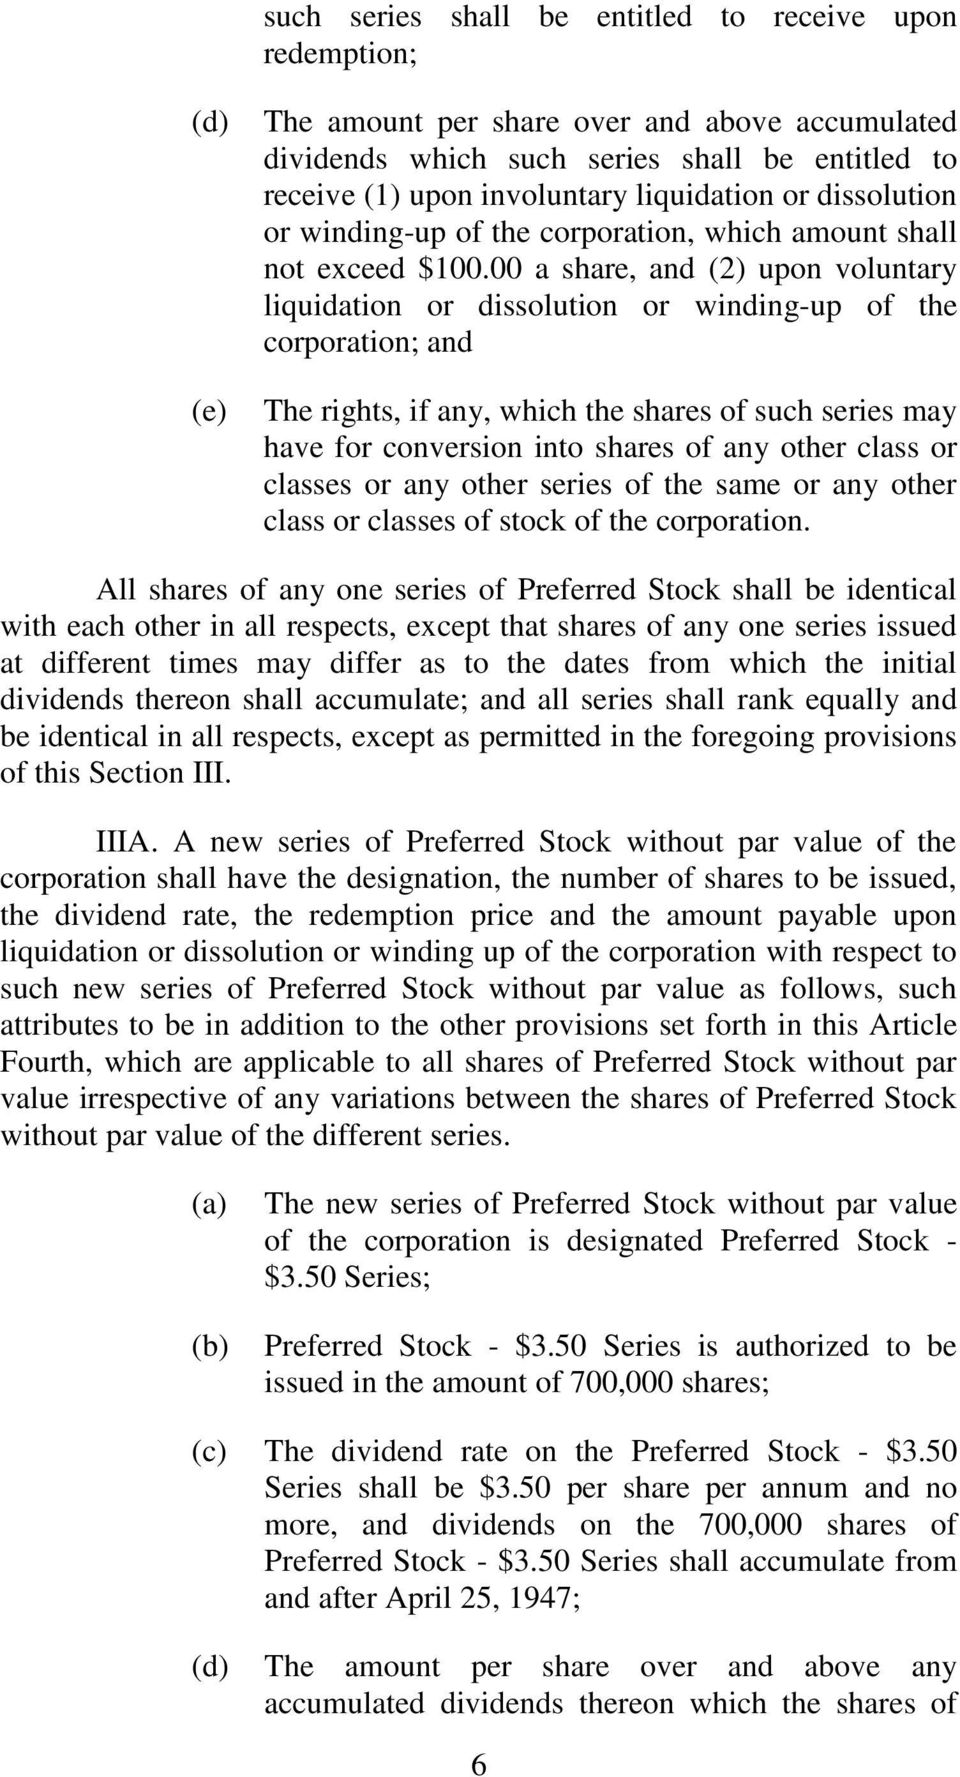 00 a share, and (2) upon voluntary liquidation or dissolution or winding-up of the corporation; and The rights, if any, which the shares of such series may have for conversion into shares of any